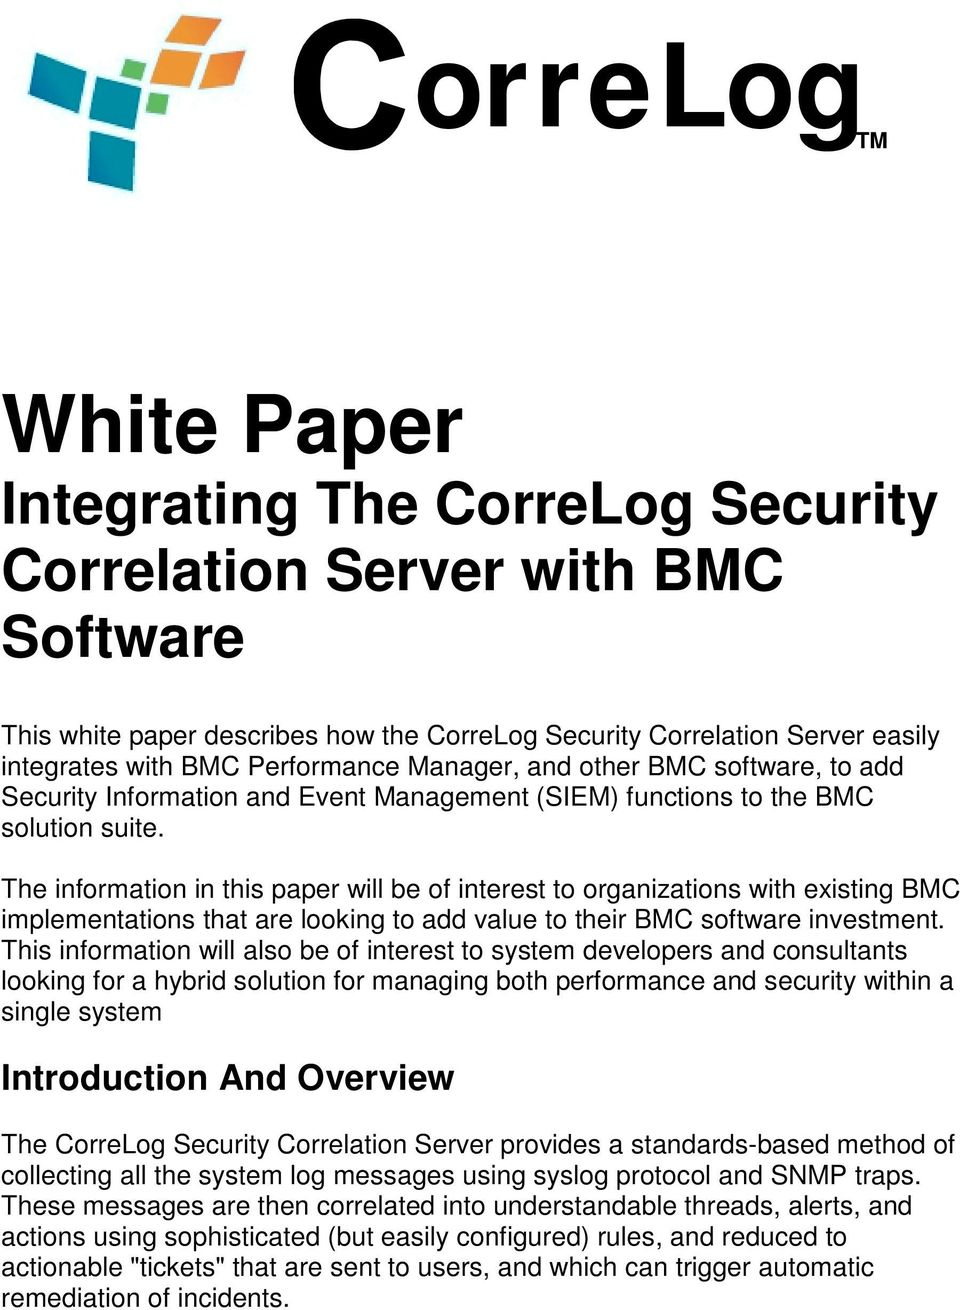 The information in this paper will be of interest to organizations with existing BMC implementations that are looking to add value to their BMC software investment.